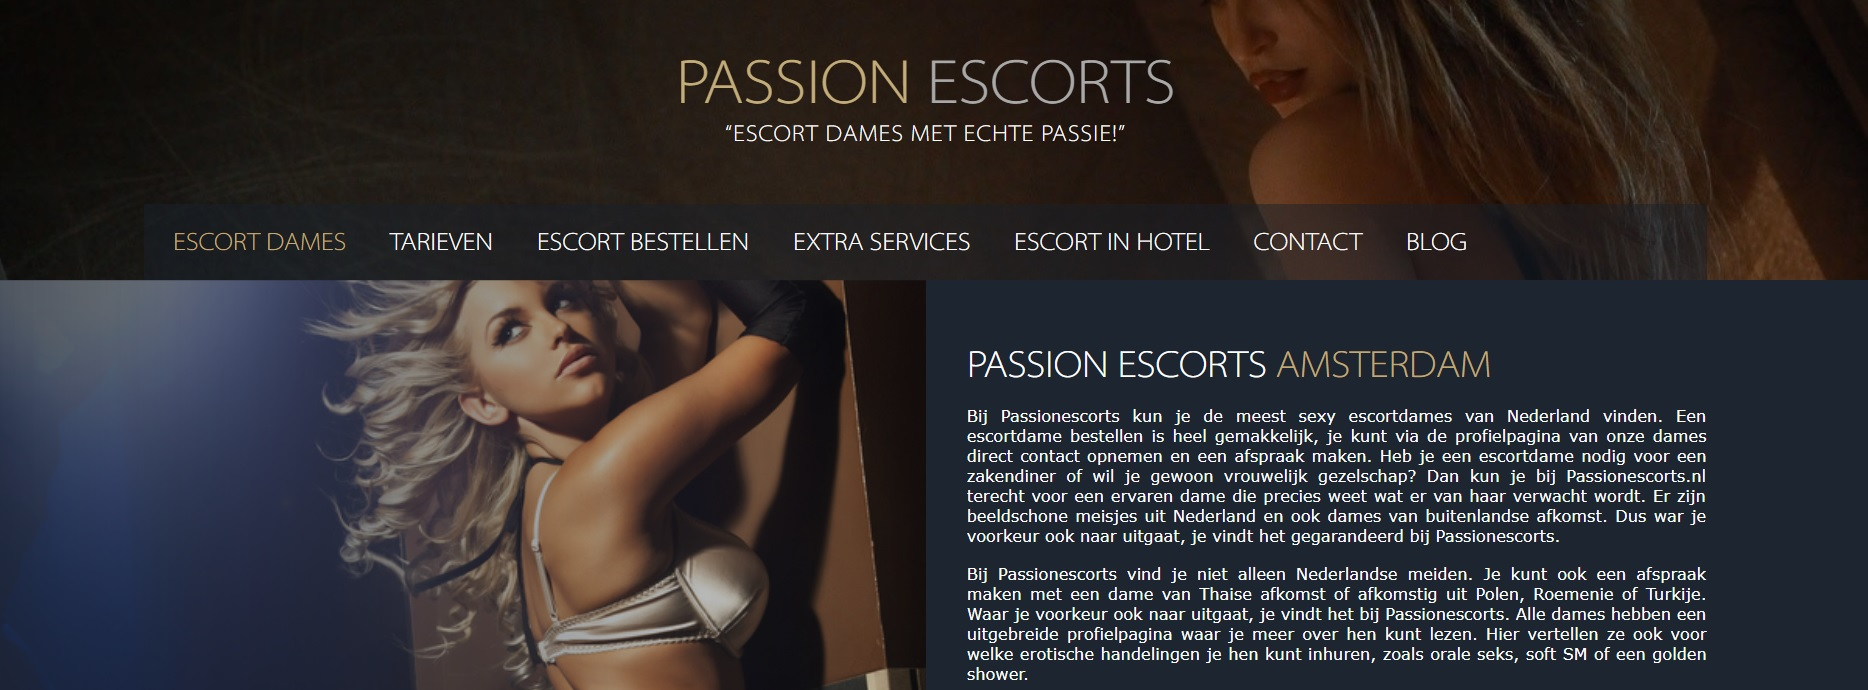 Passion Escorts Amsterdam